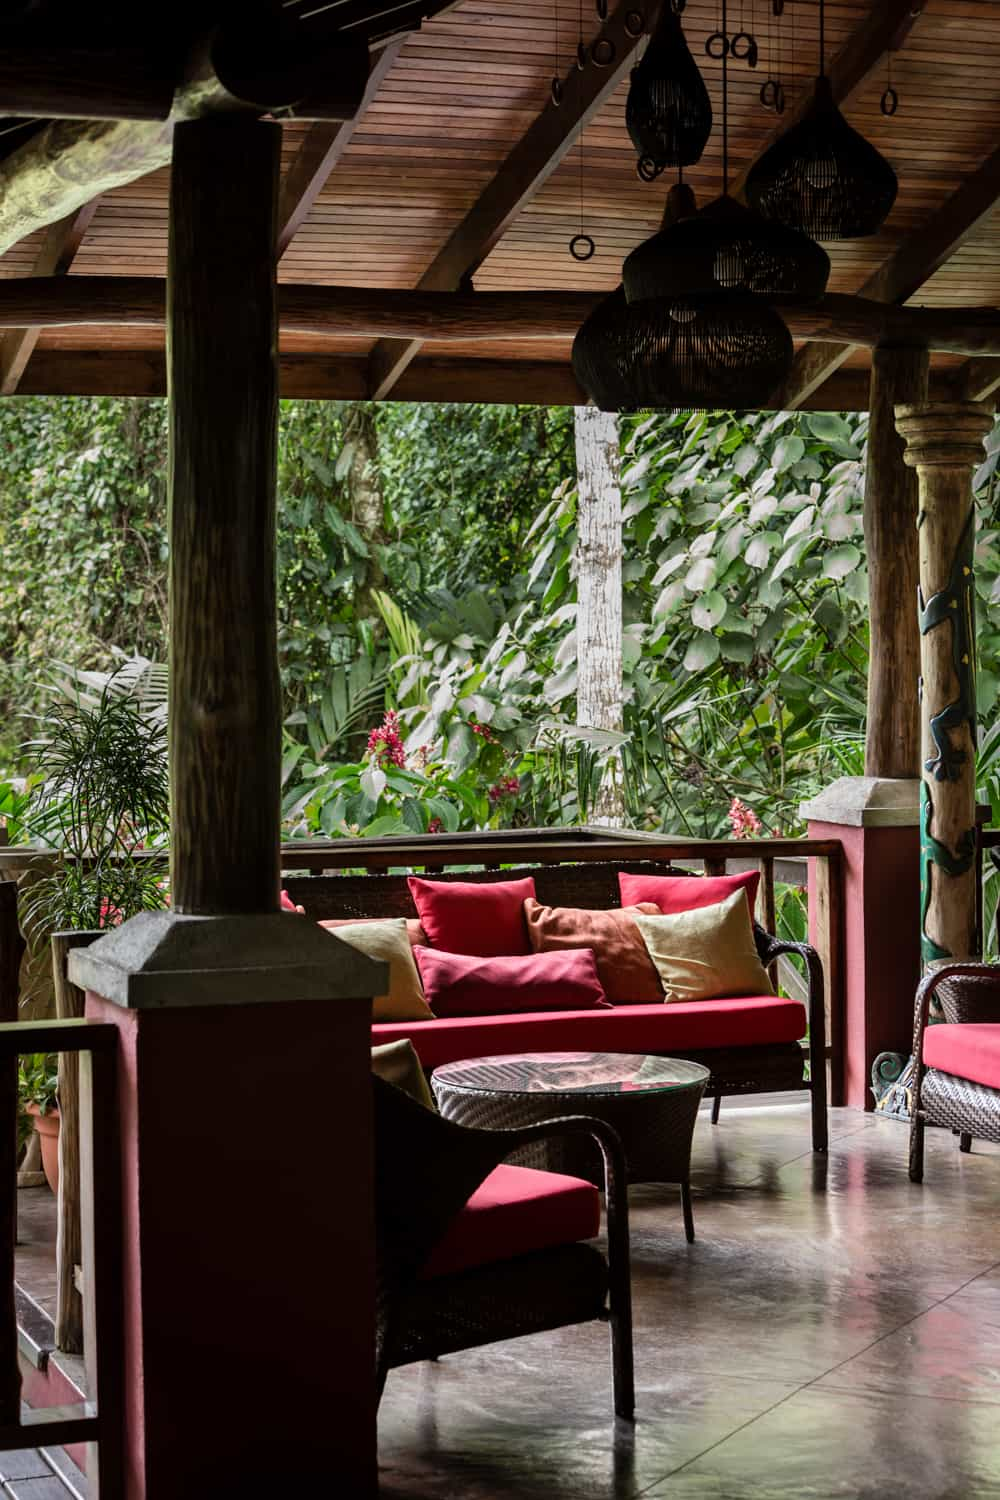 Seating area to relax while checkin in for your rainforest wedding in La Fortuna.